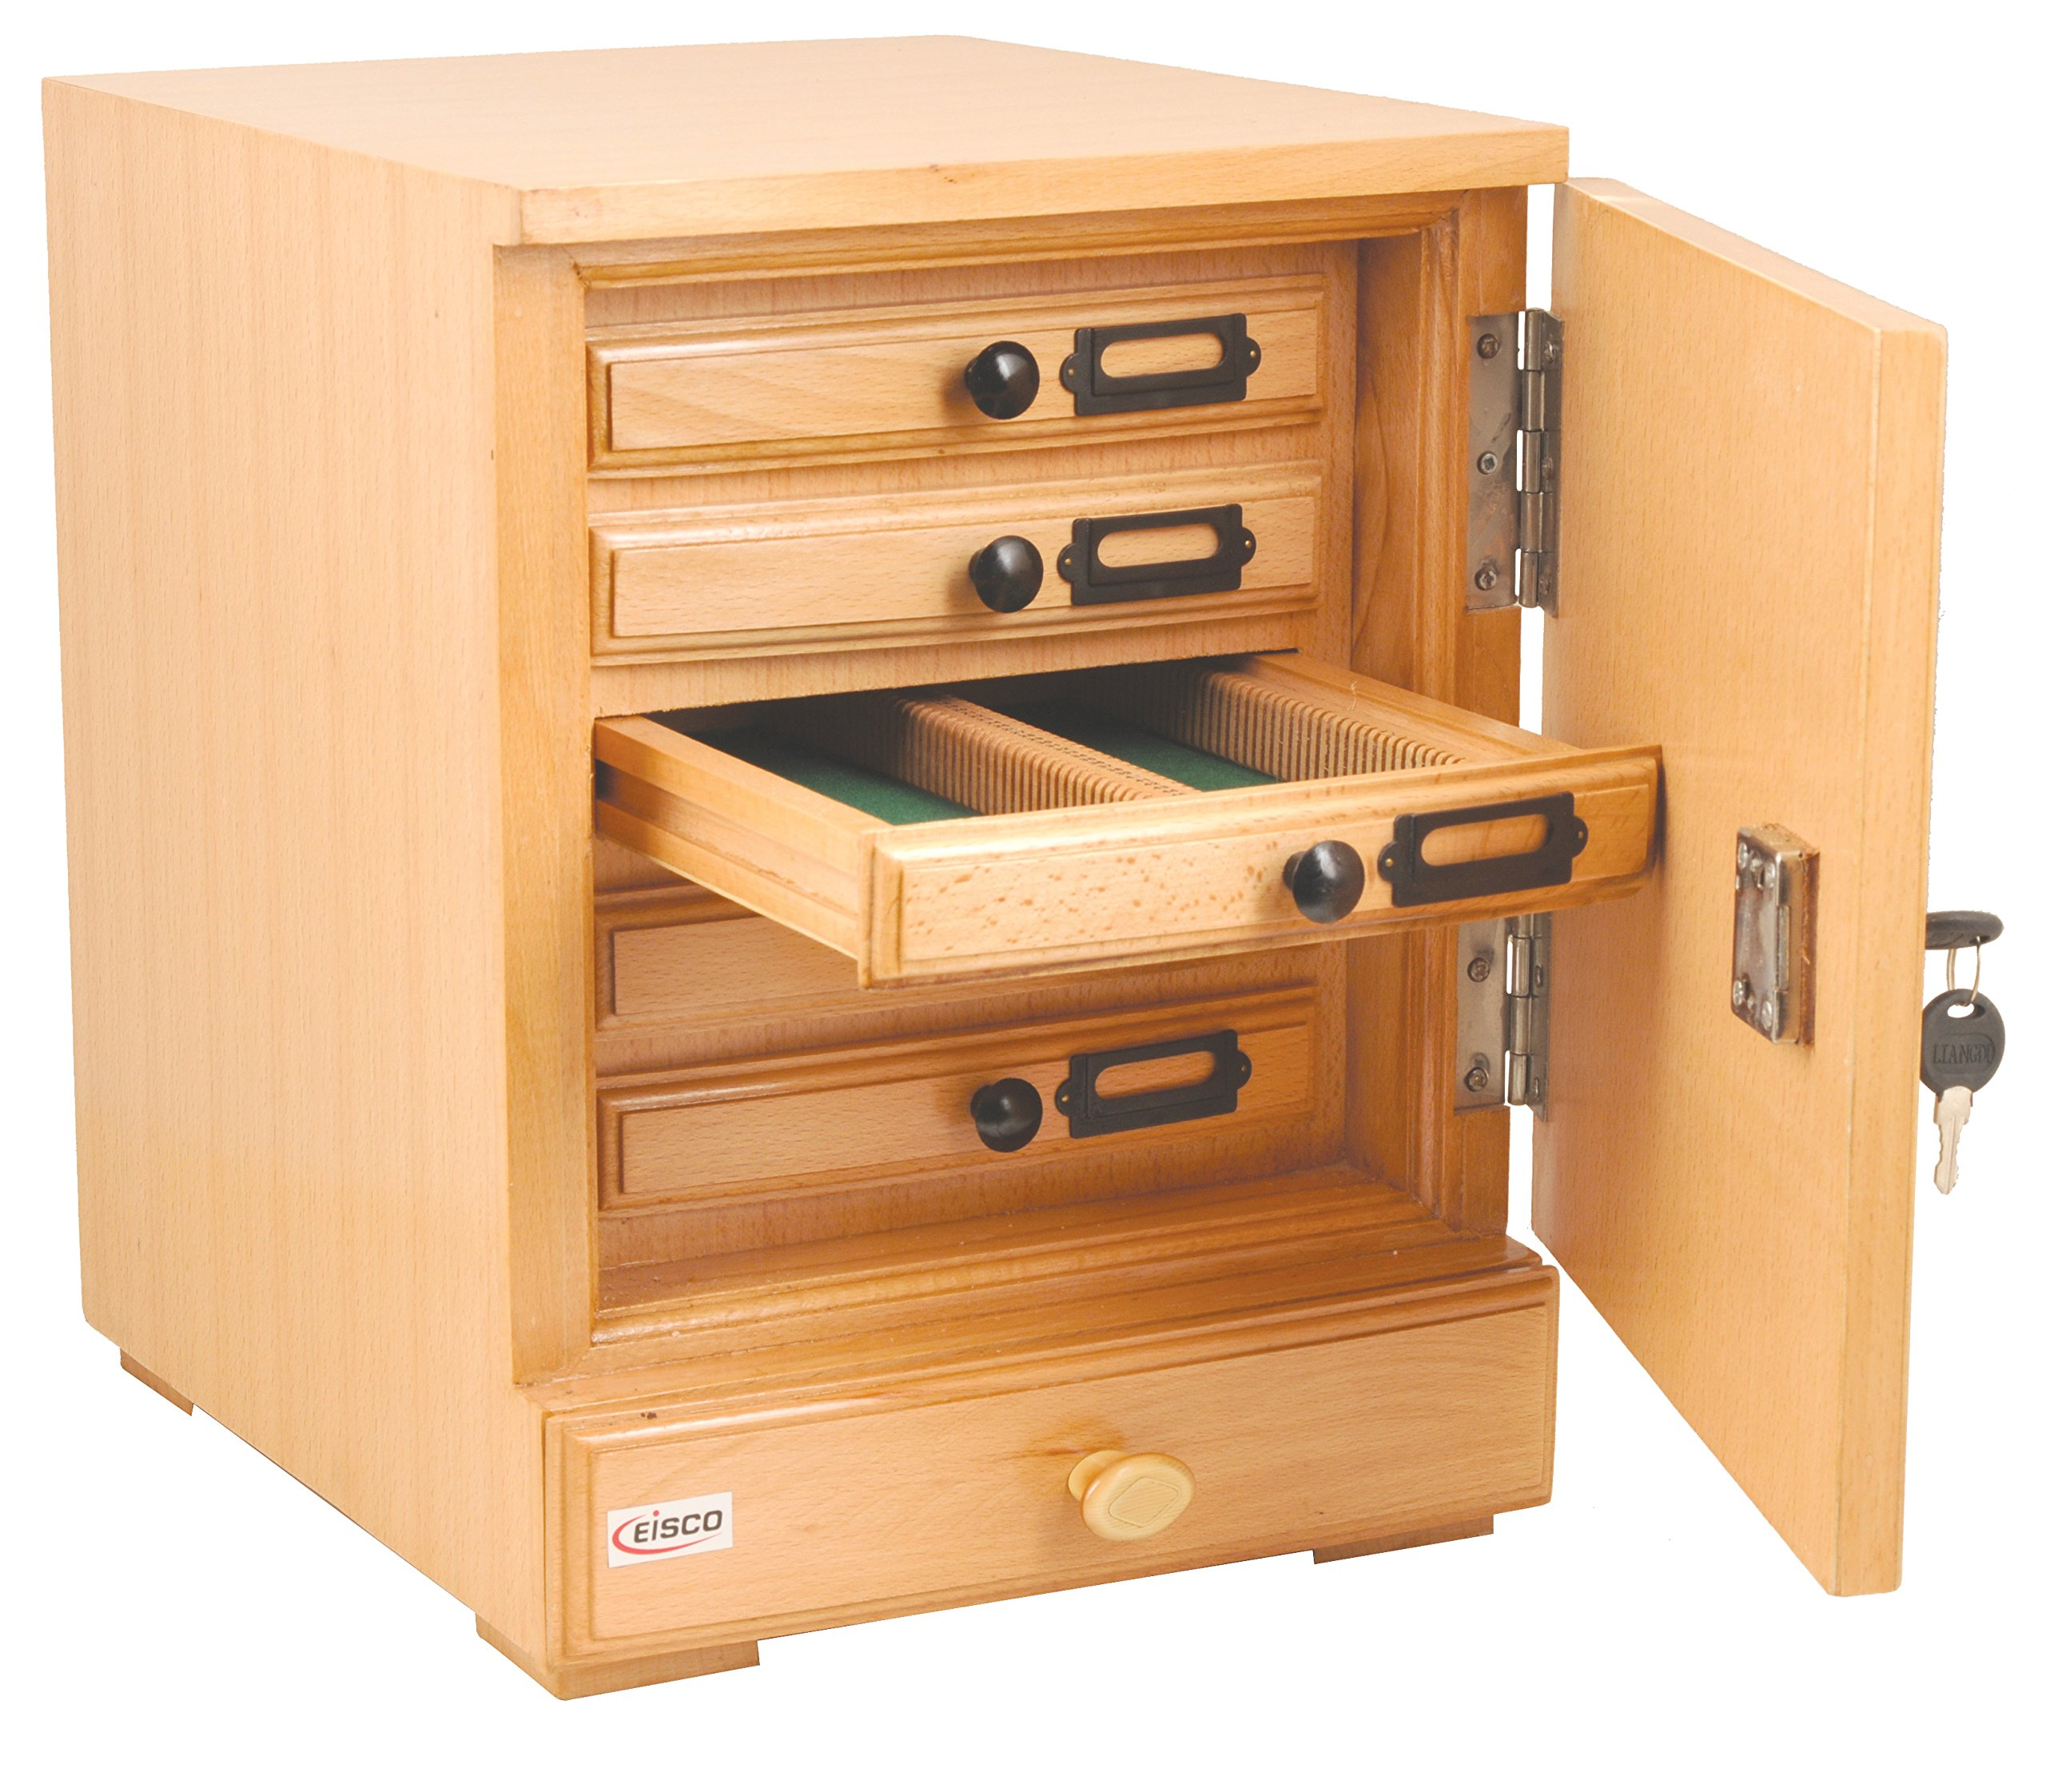 Eisco BI0123A Wooden Slide Cabinet, 5 Drawers, 500 Slide Capacity Total